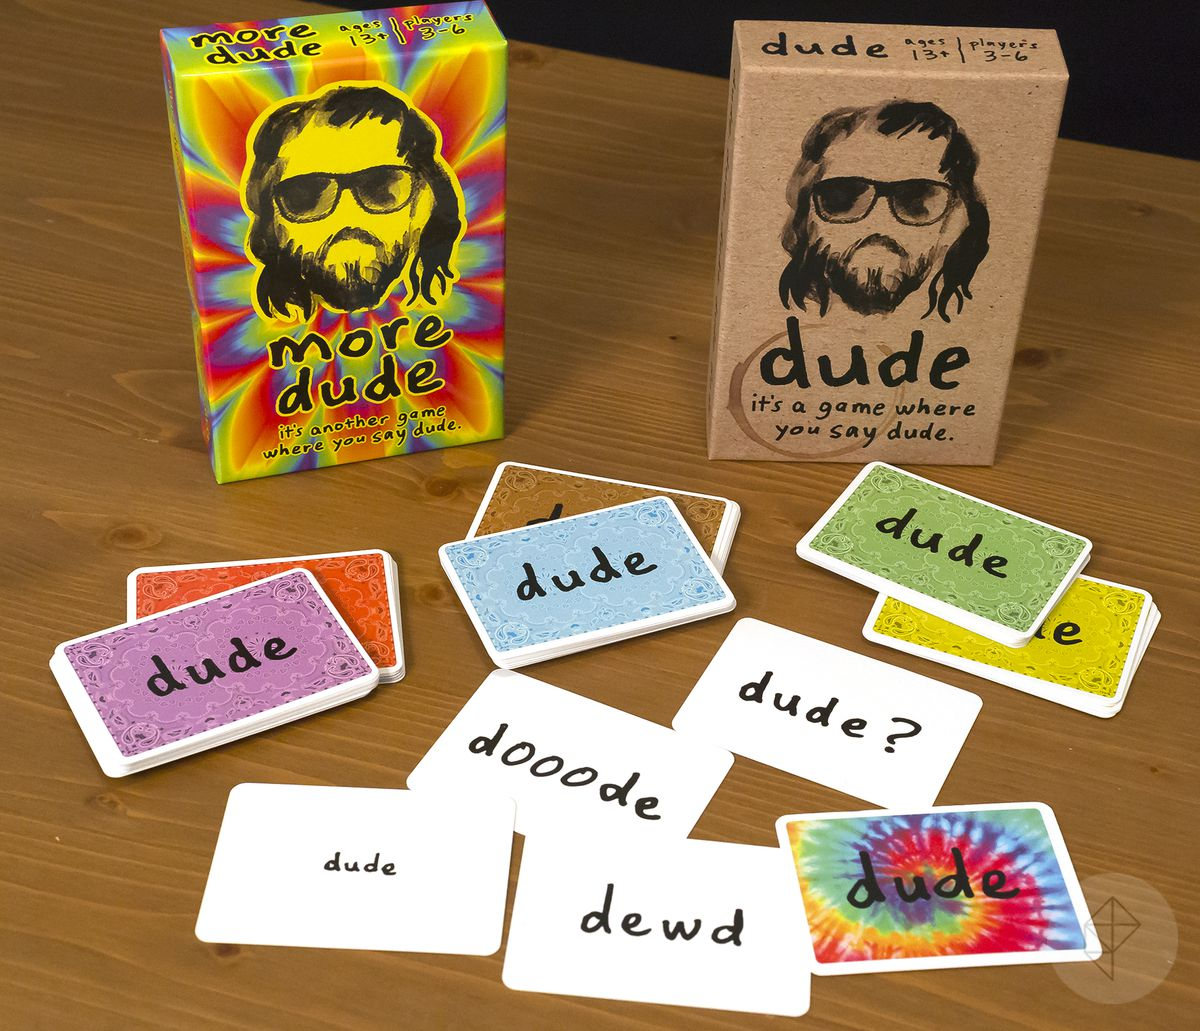 Gen Con 2018 — A collection of cards from Dude.